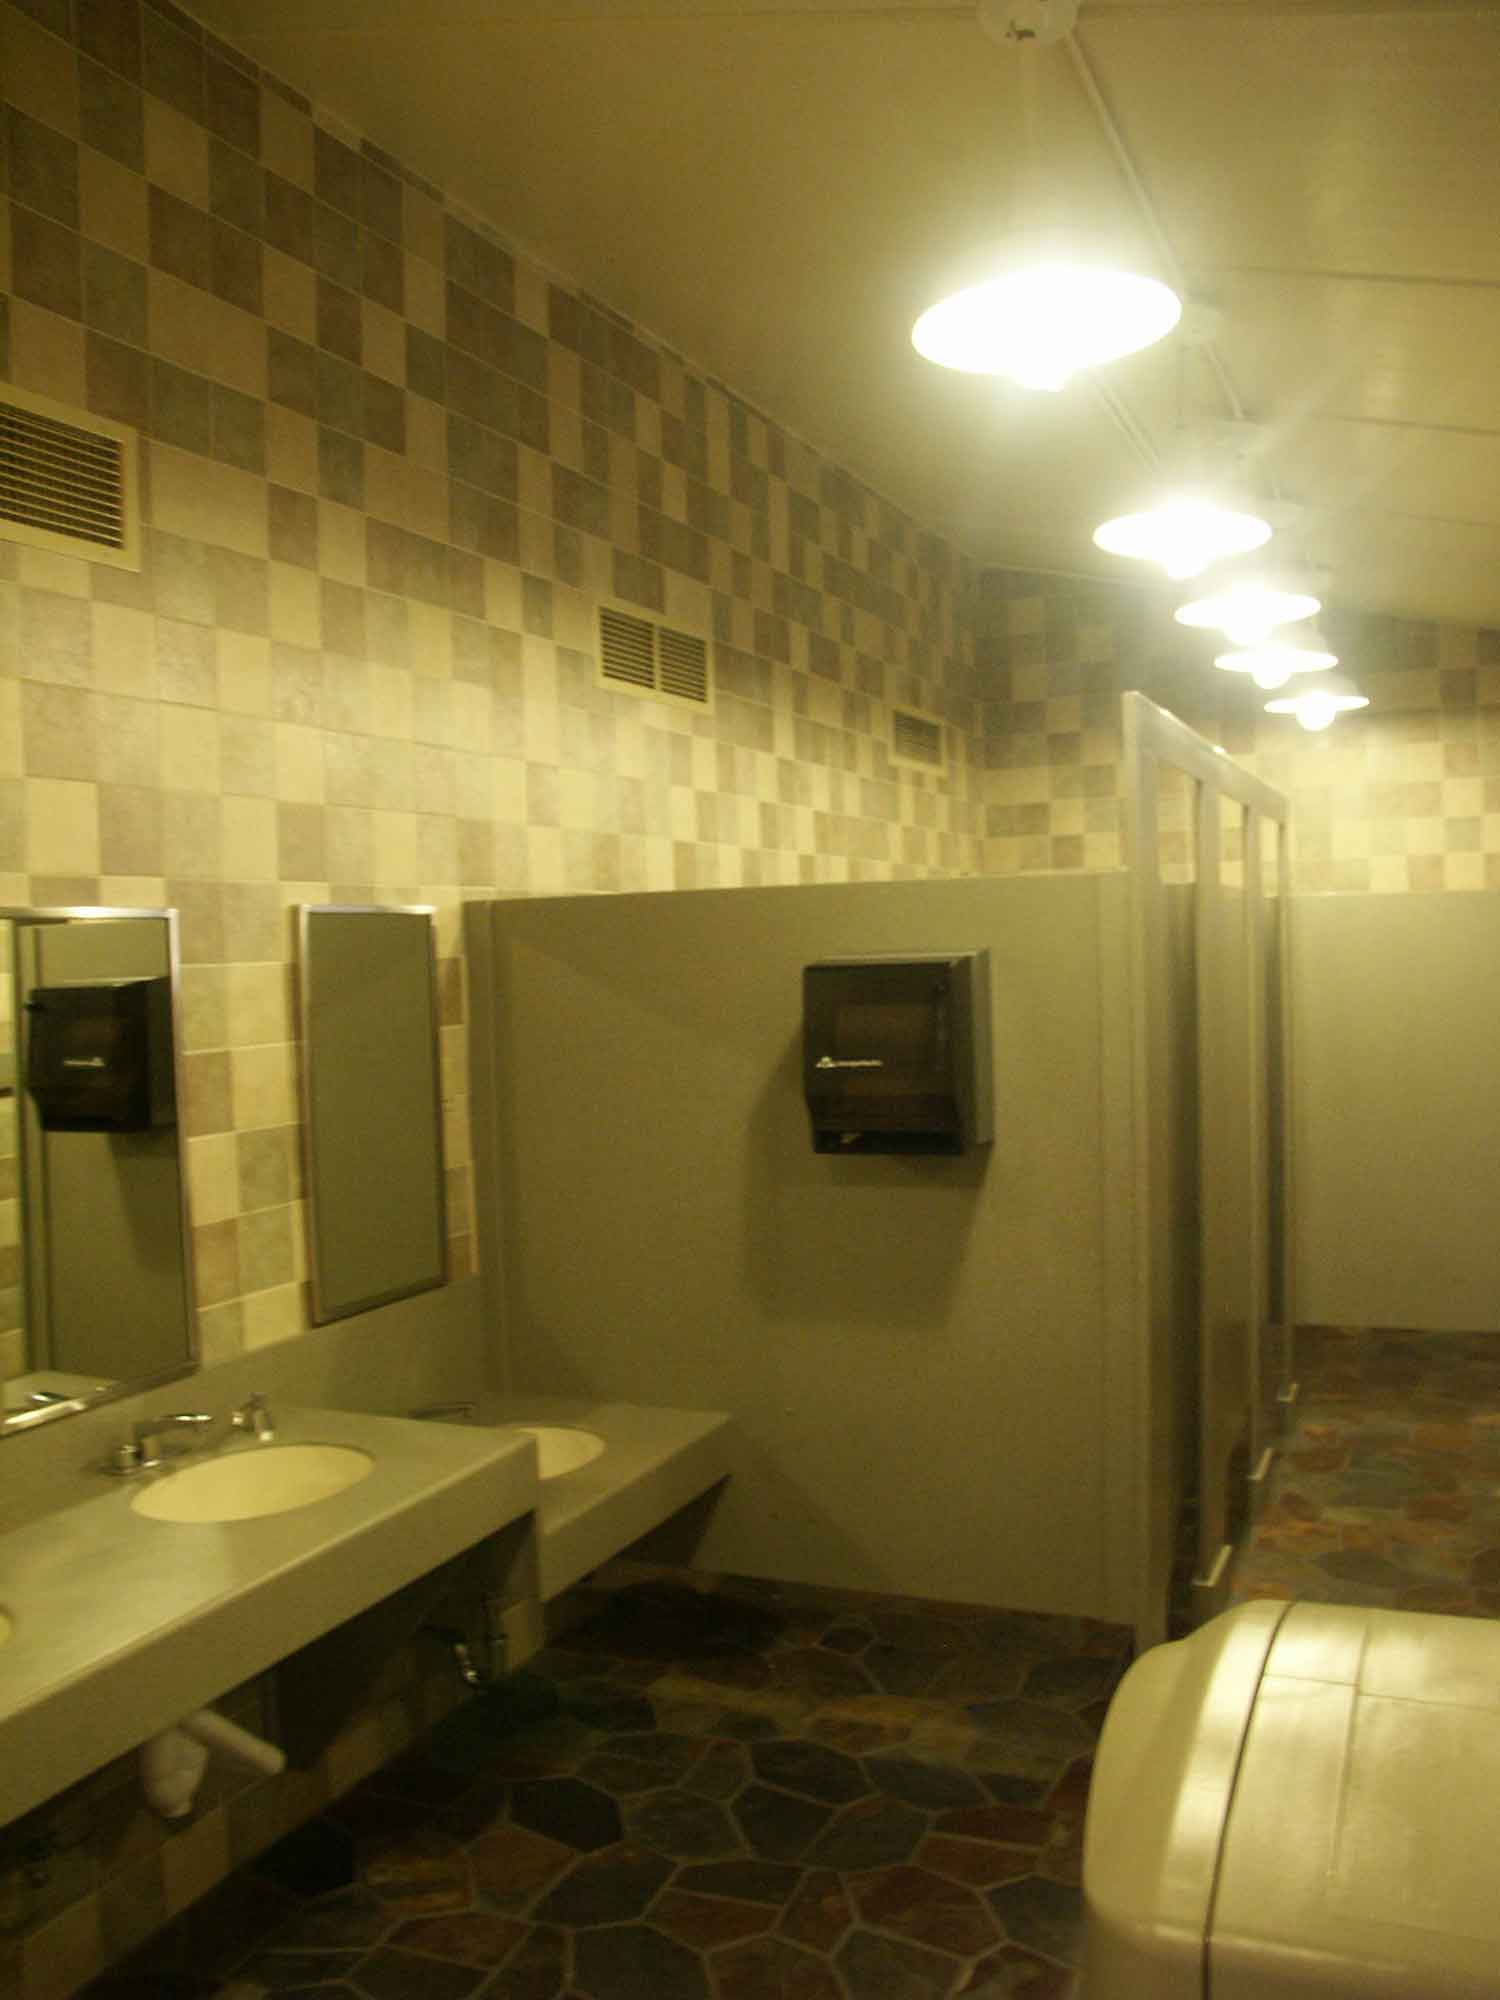 Fort Wilderness - Comfort Station Sinks